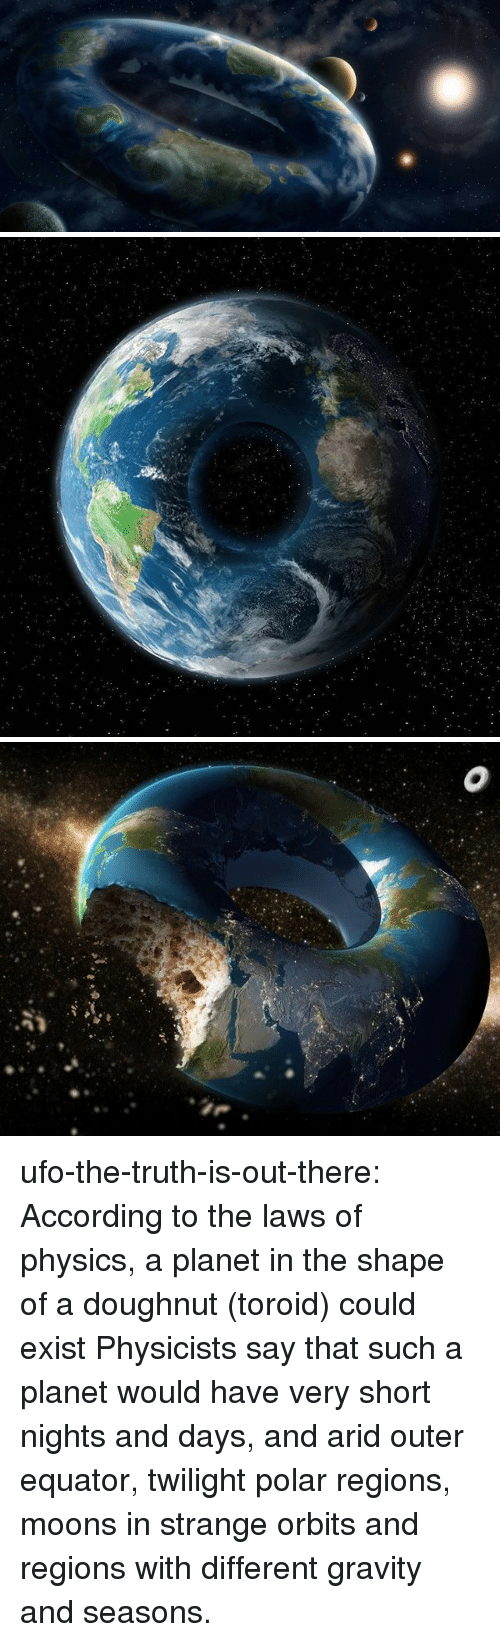 Twilight: ufo-the-truth-is-out-there: According to the laws of physics, a planet in the shape of a doughnut (toroid) could exist Physicists say that such a planet would have very short nights and days, and arid outer equator, twilight polar regions, moons in strange orbits and regions with different gravity and seasons.